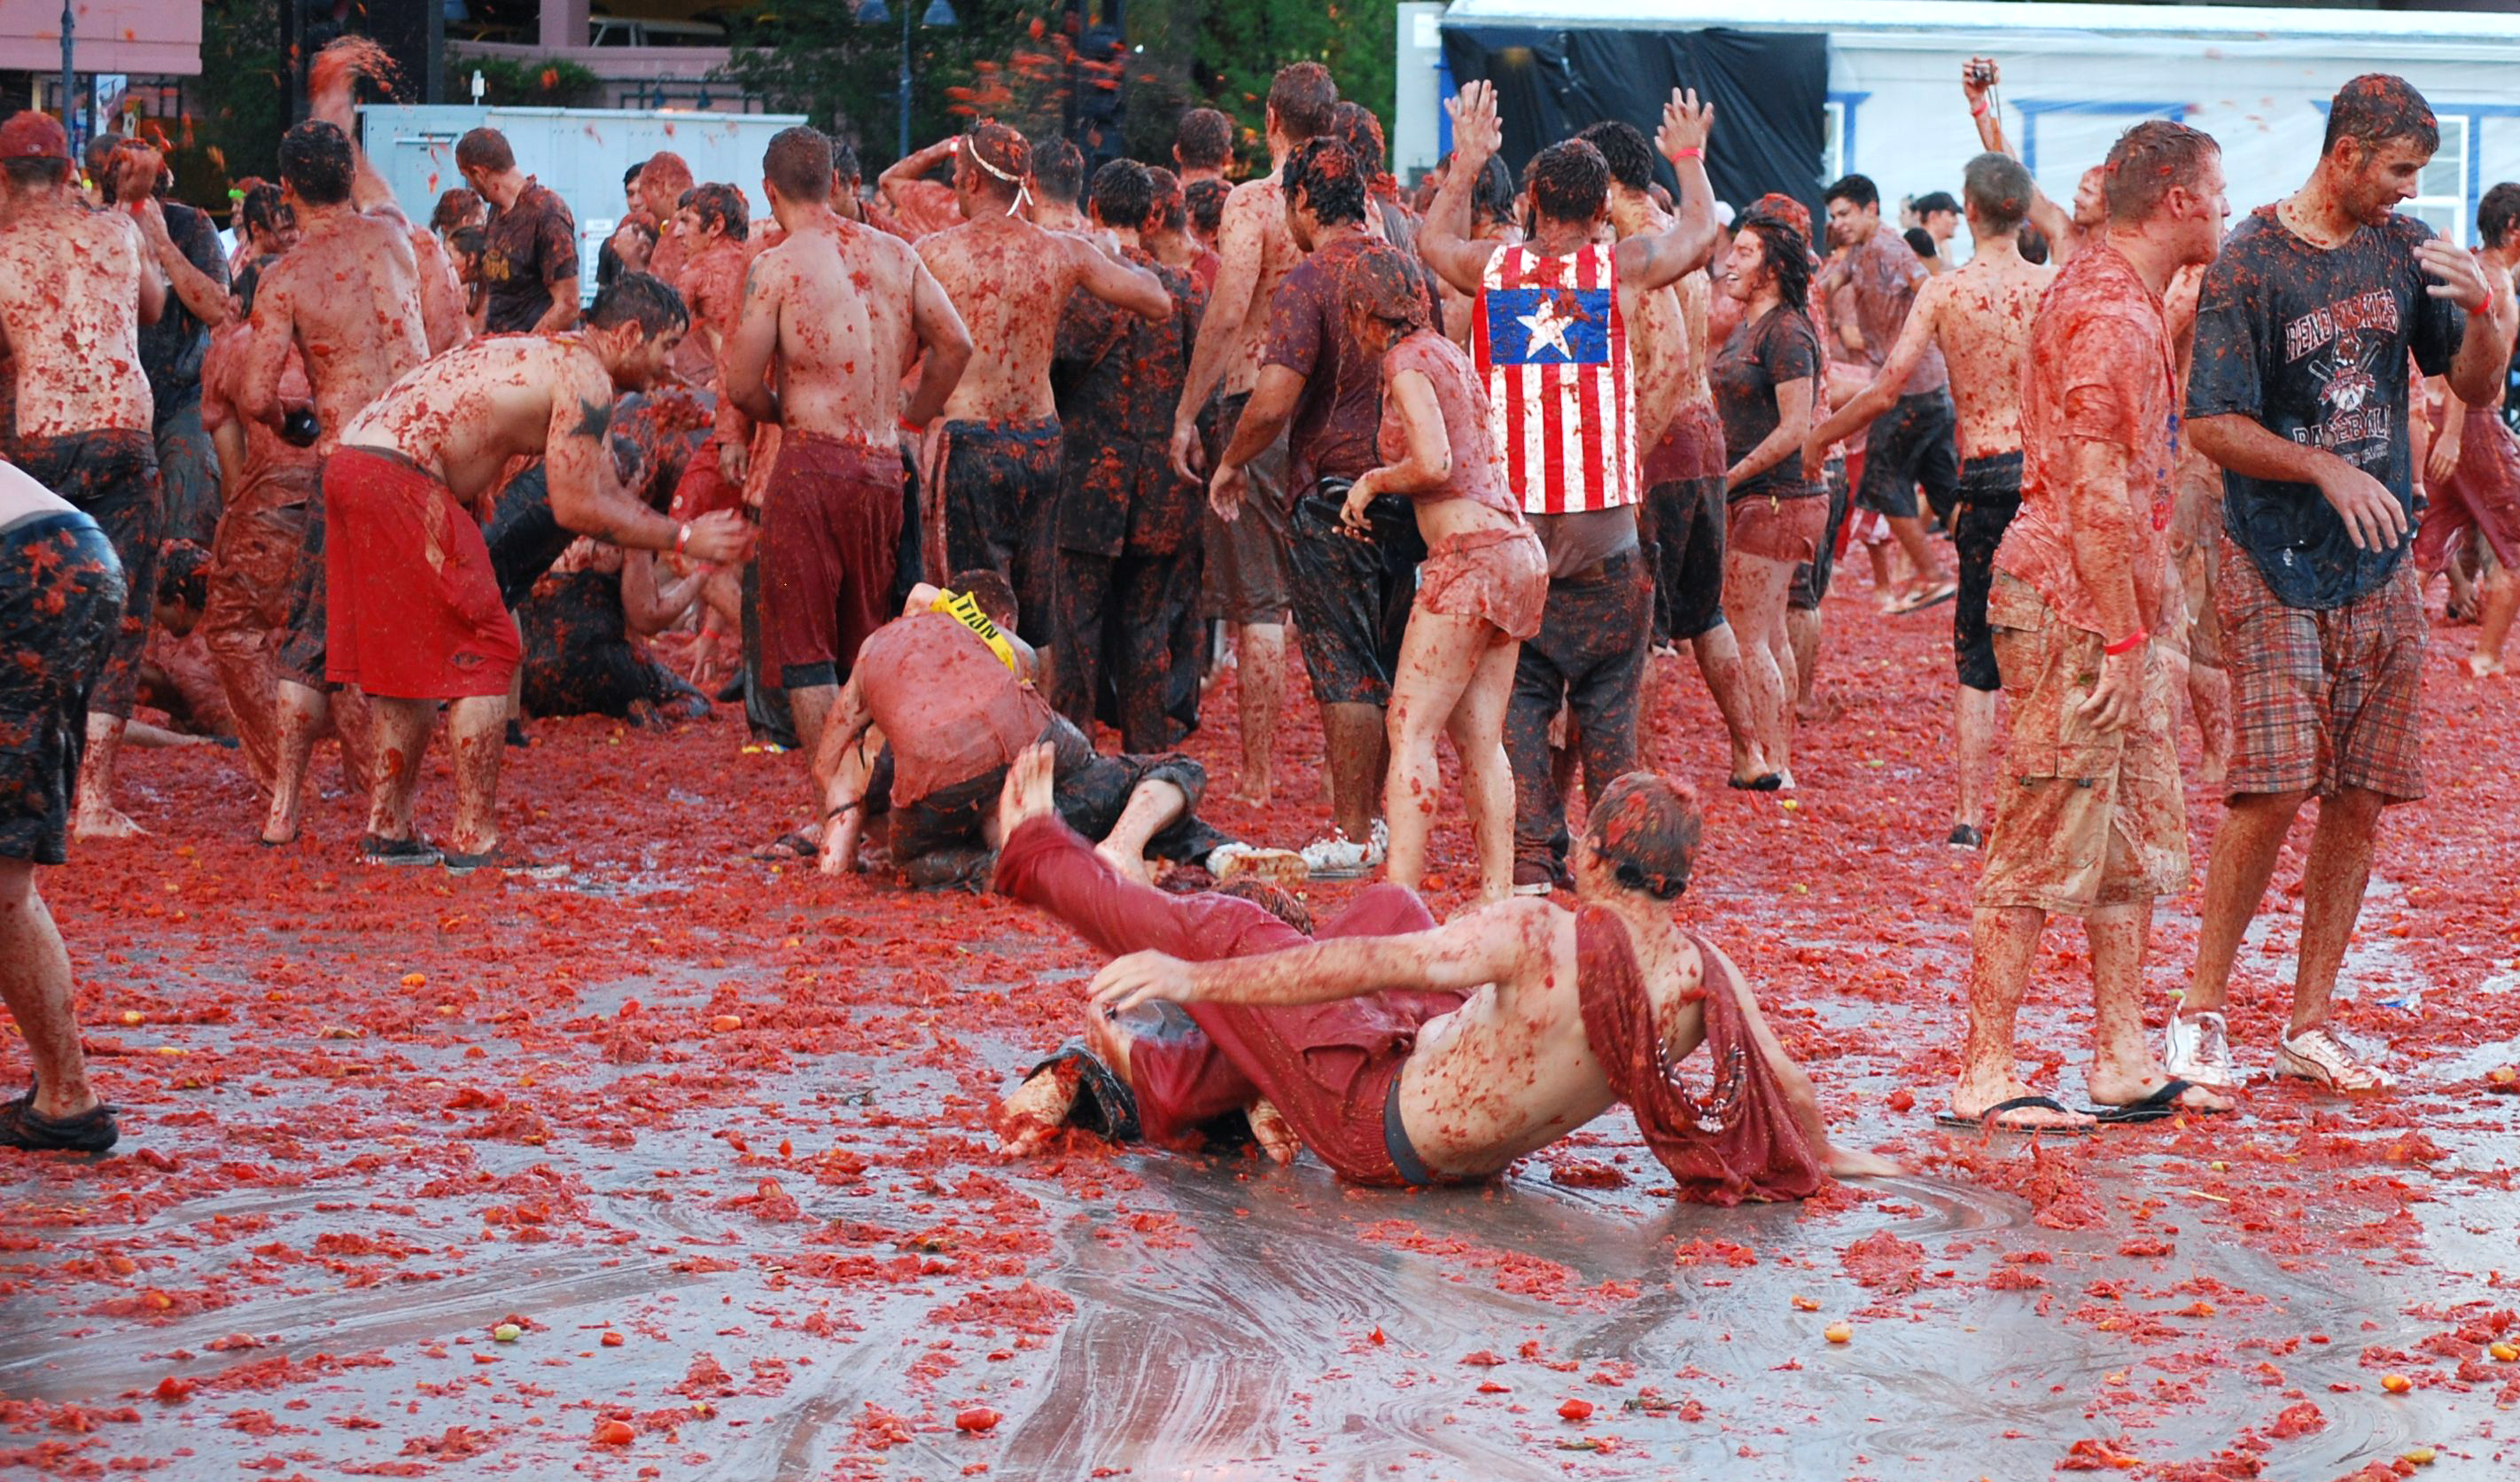 Travellers from around the world make the trek to the annual La Tomatina festival. Photo courtesy Reno T.